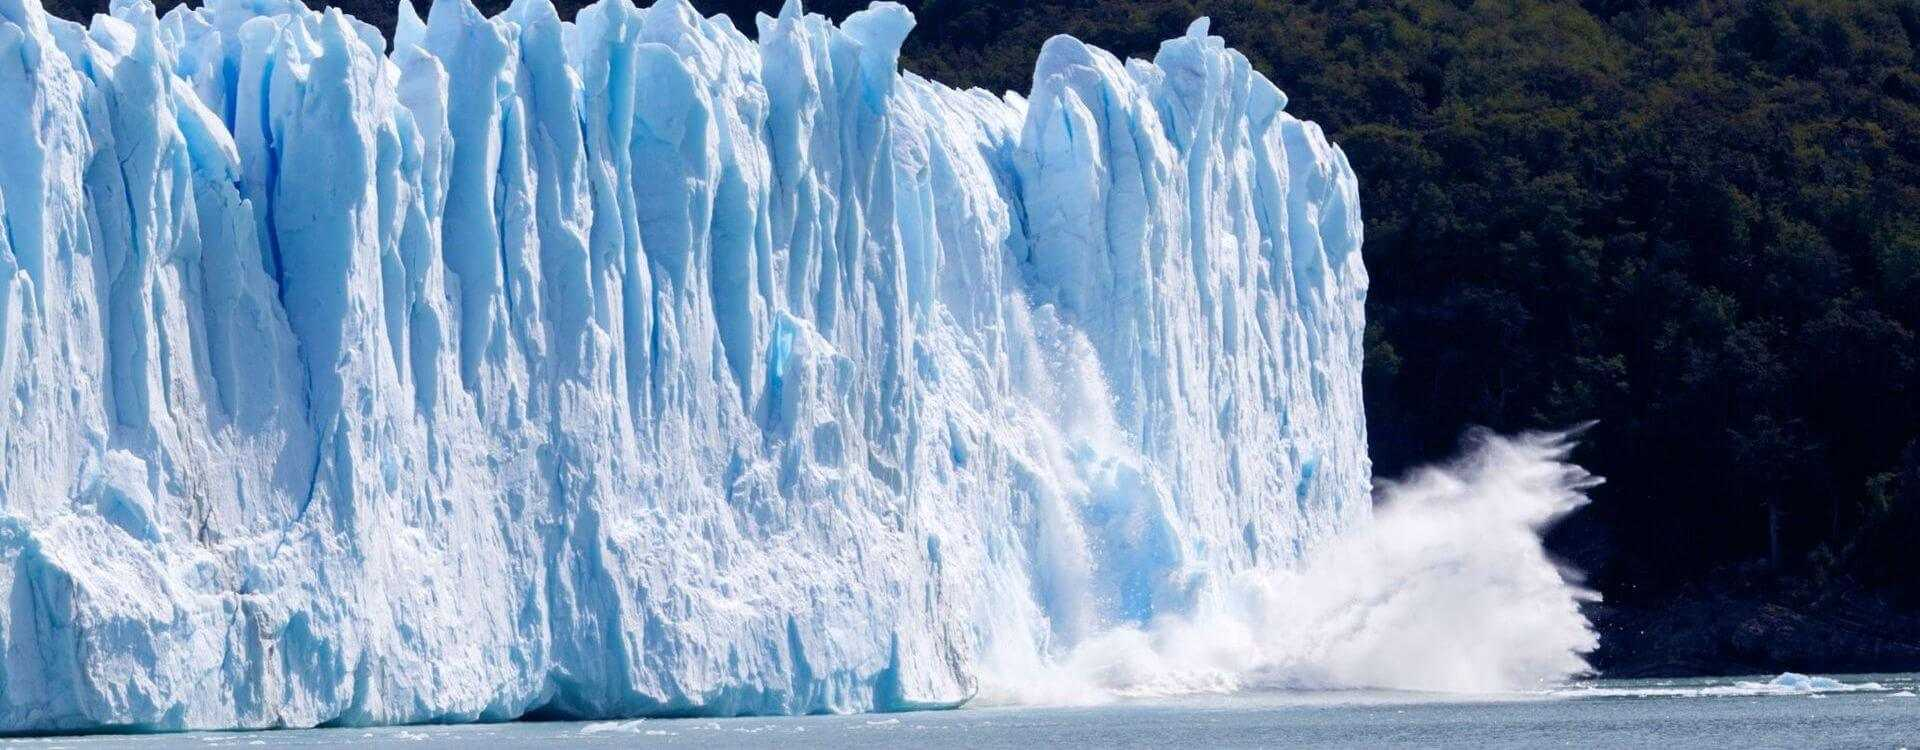 Sea Levels Rising Faster Than Expected